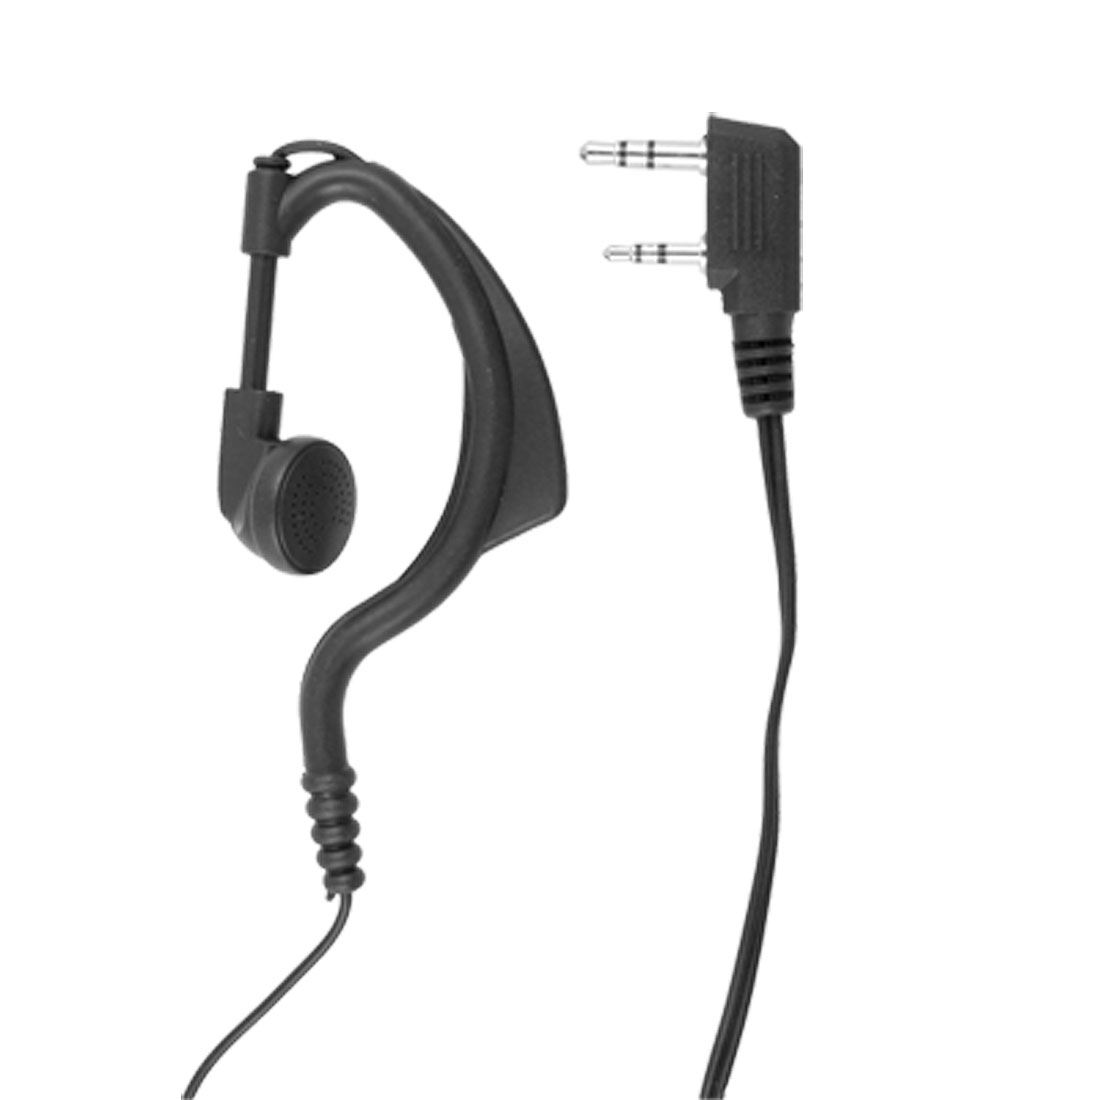 1 Earpiece Earphone for Kenwood TK3118 TK-3107 TH-22A